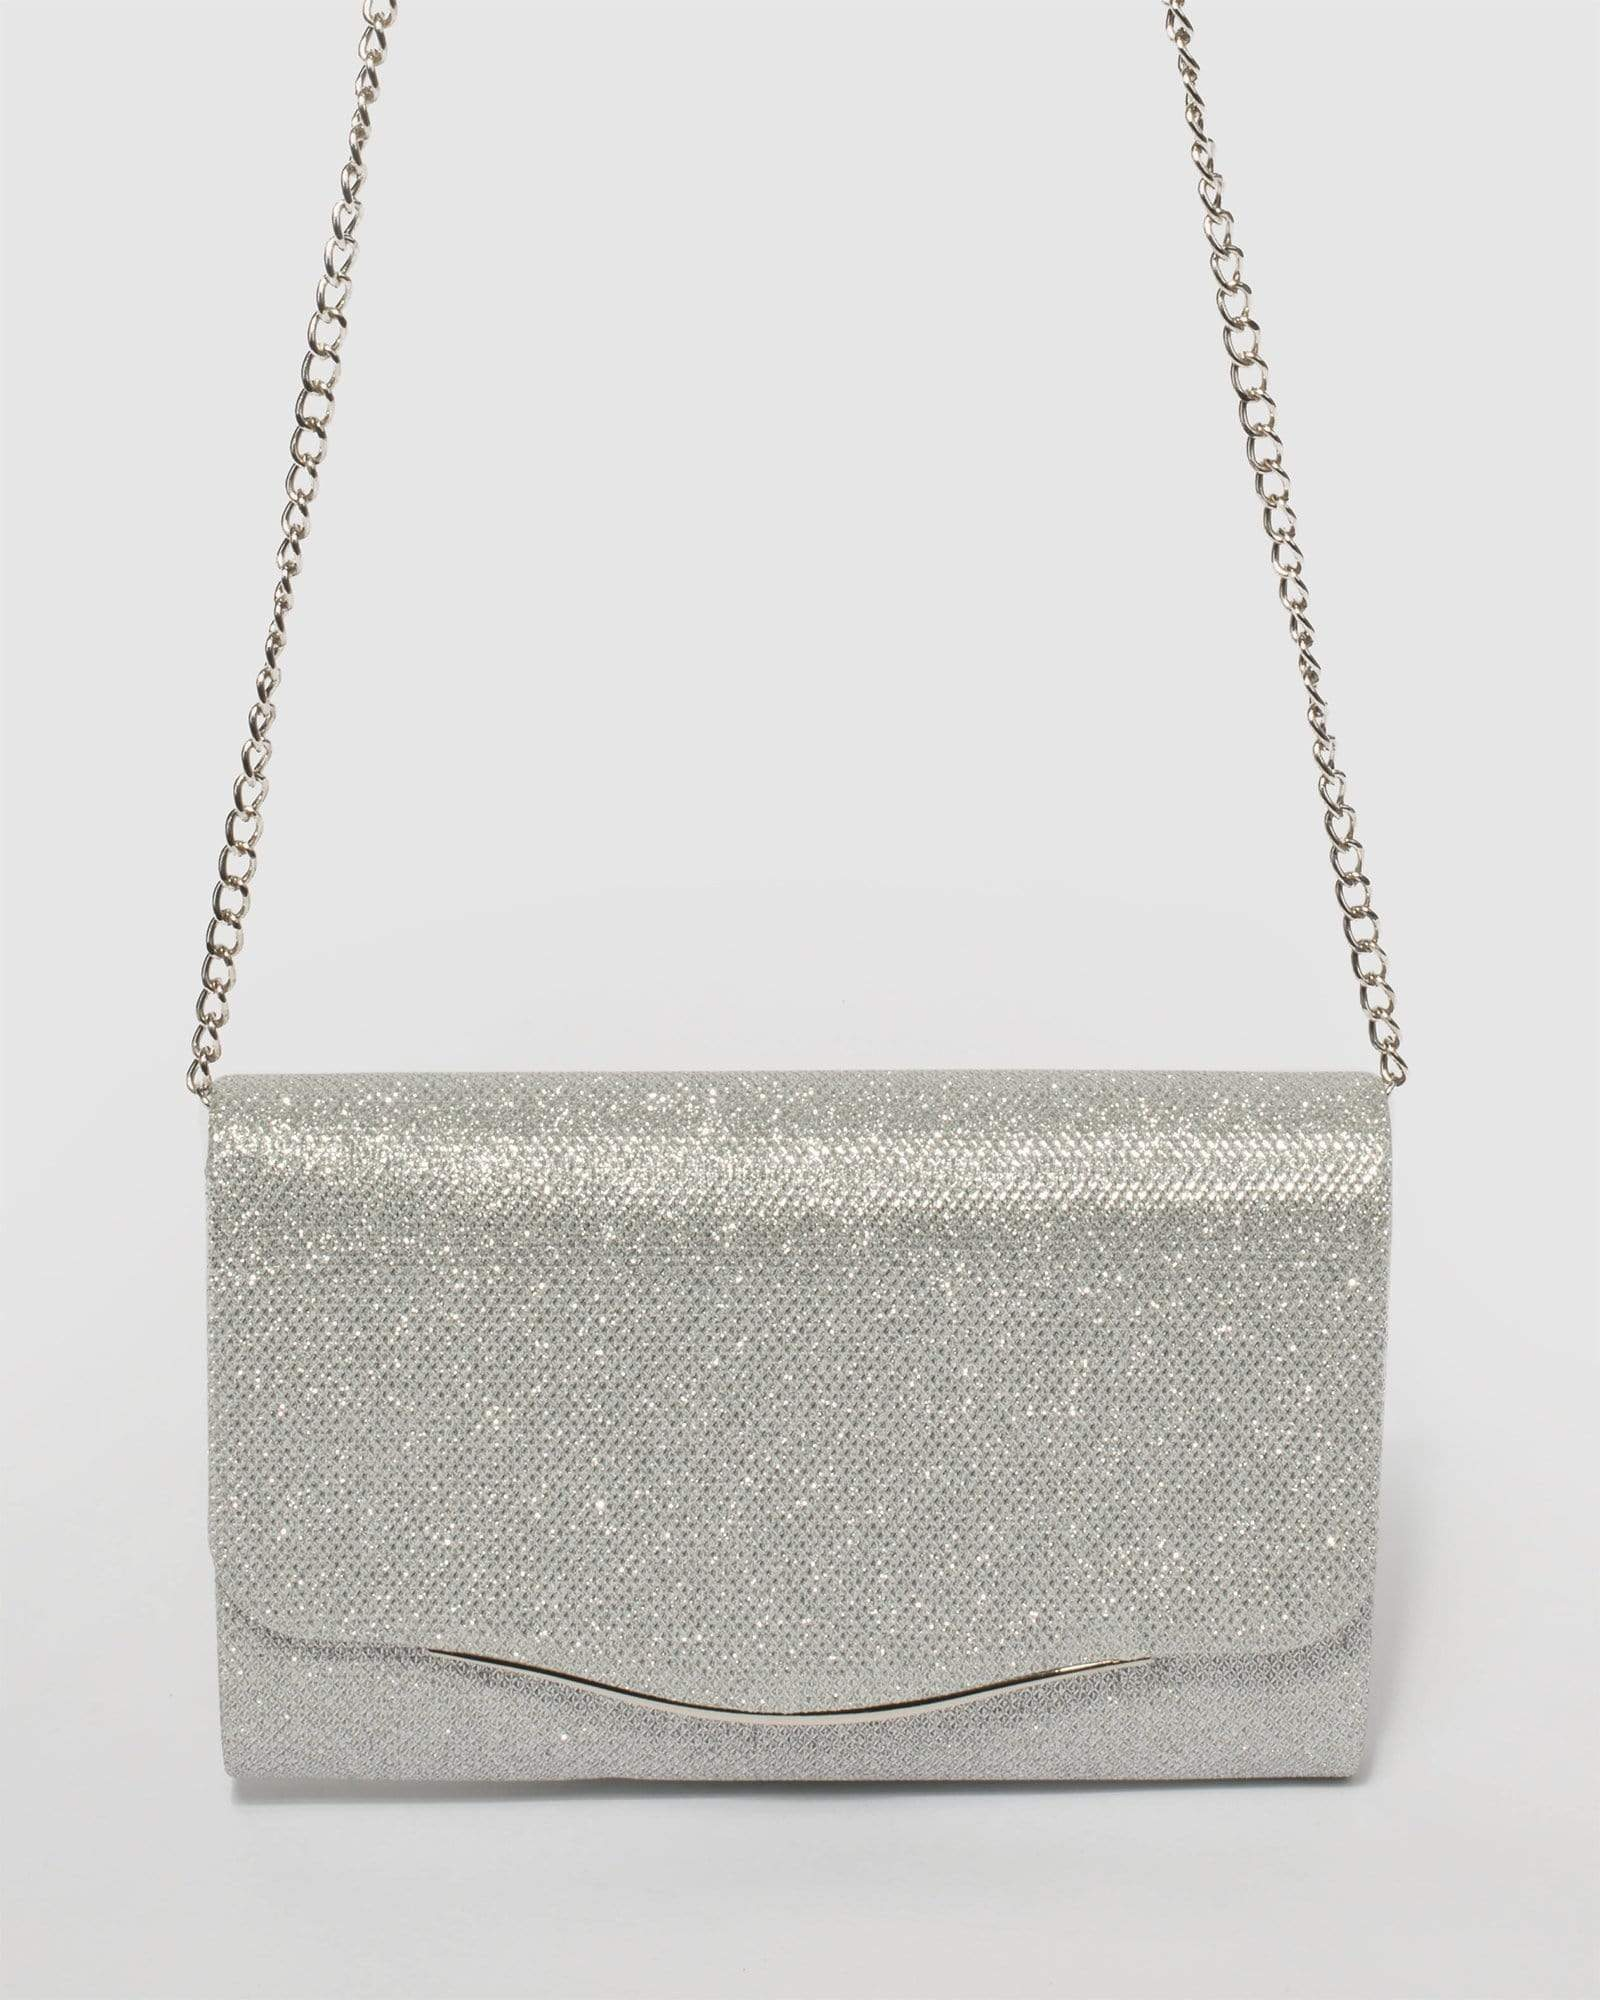 Image of Silver Adele Evening Clutch